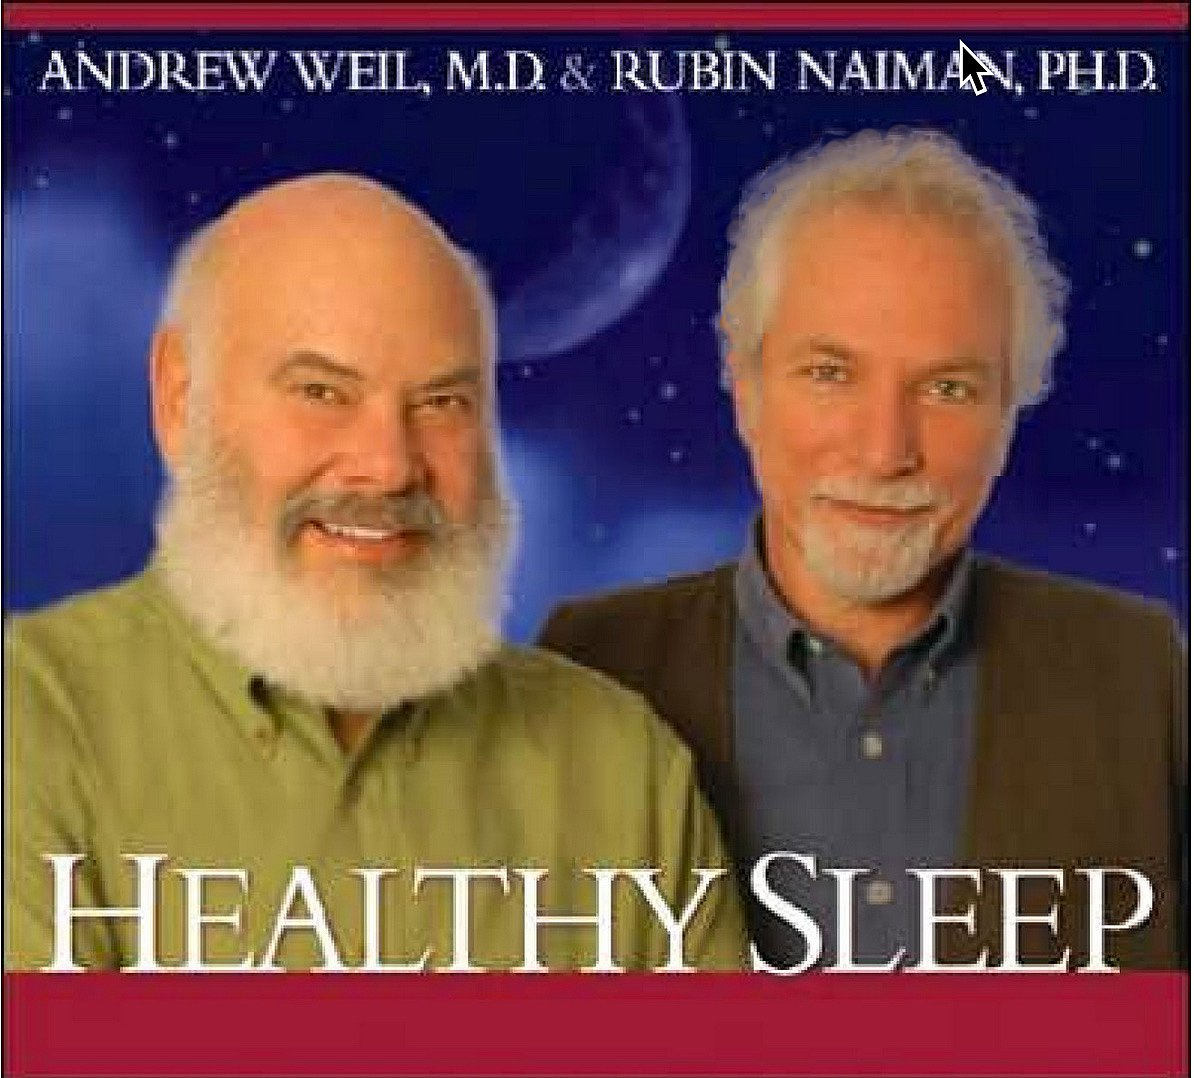 Dr. Andrew Weil & Dr. Rubin Naiman